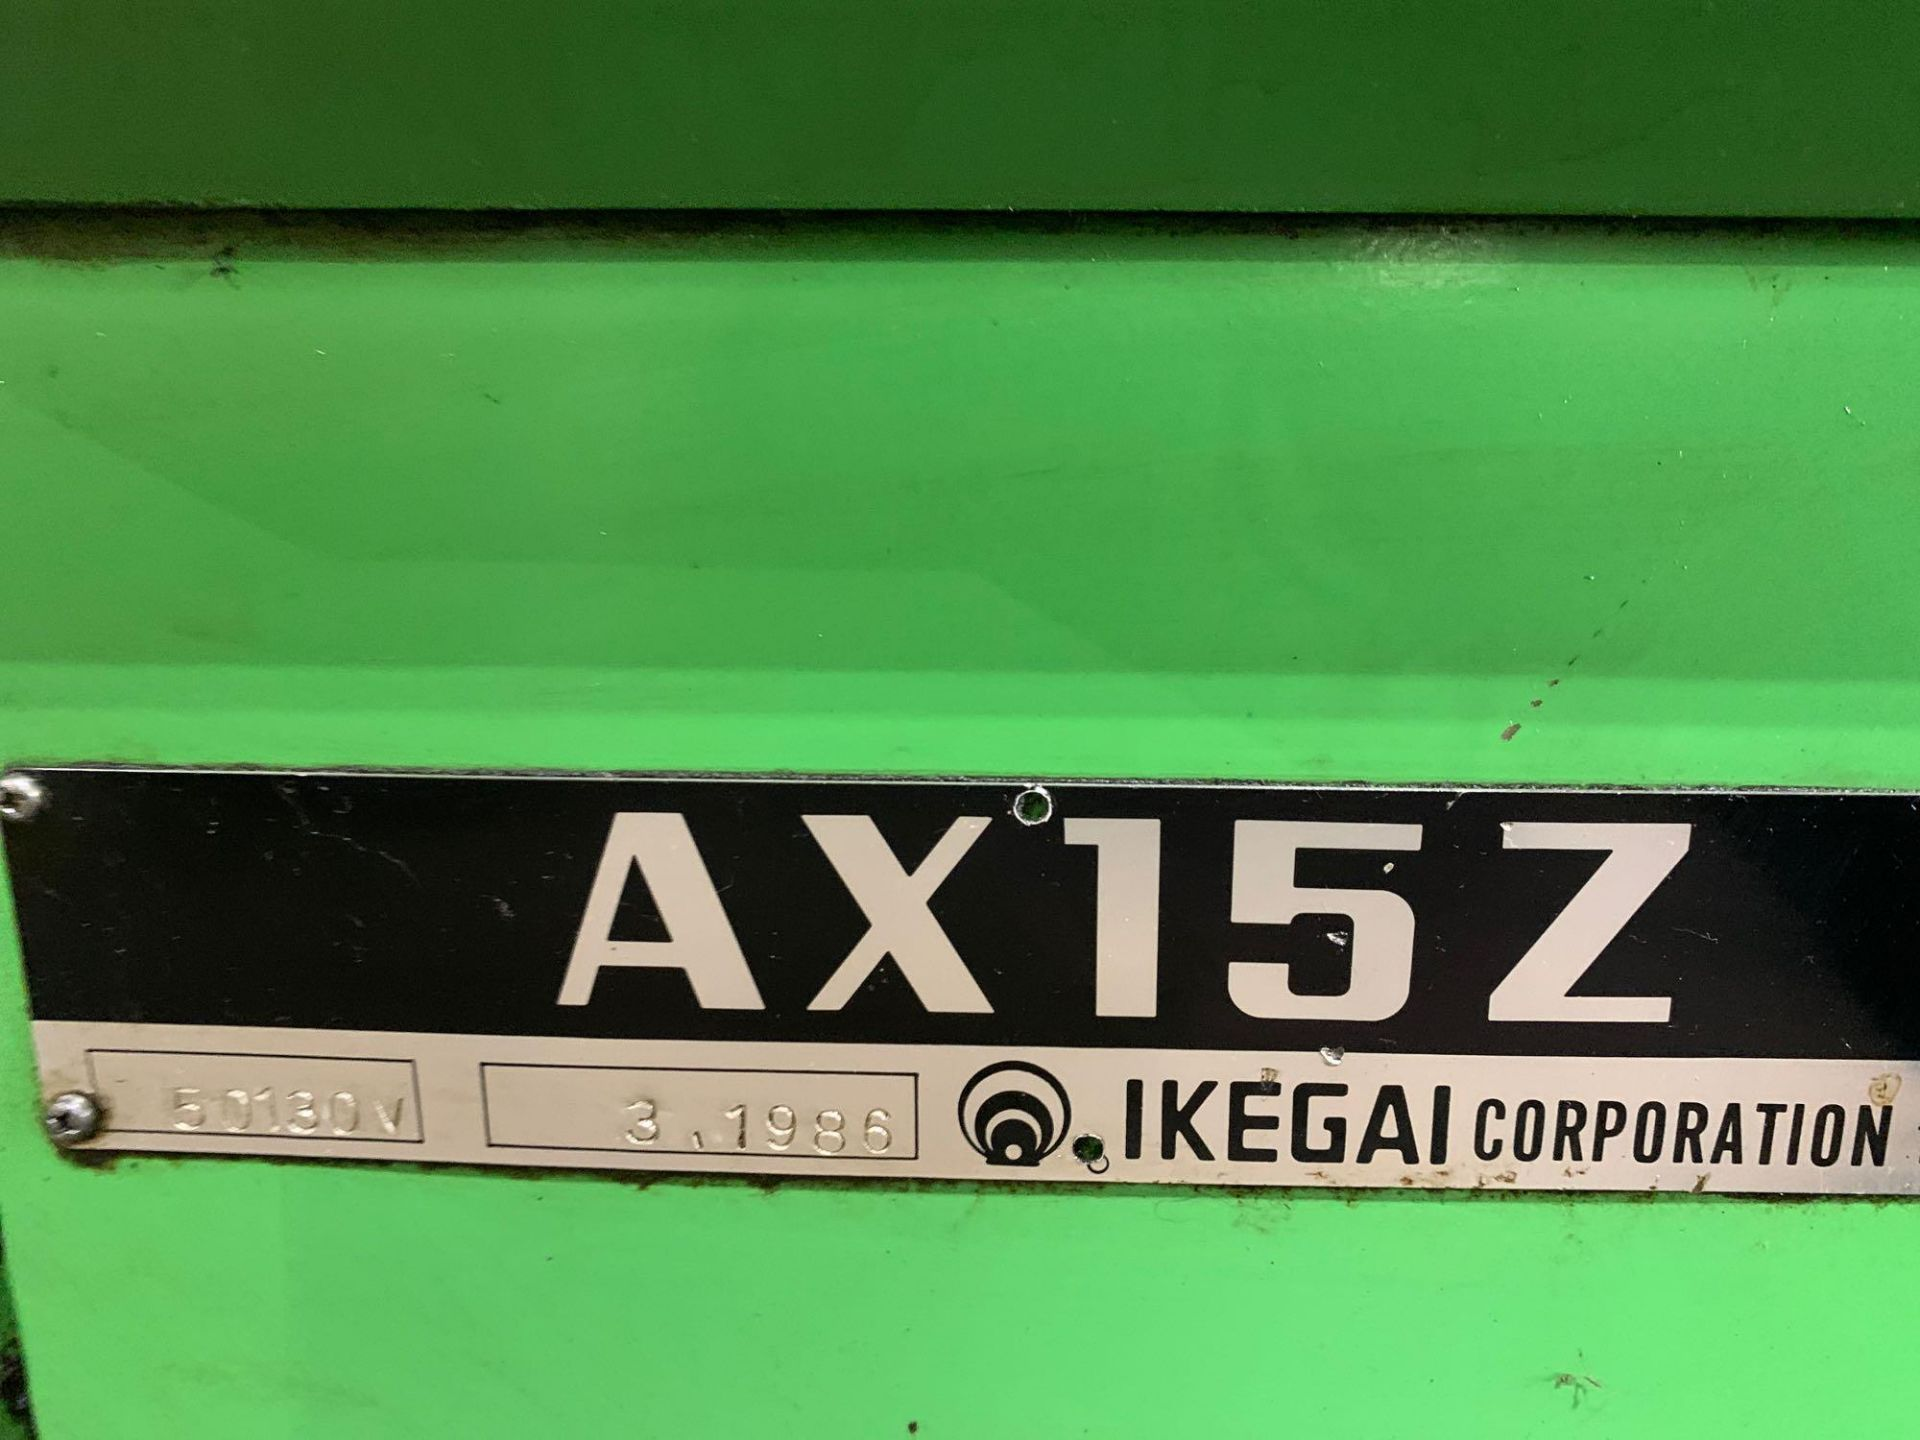 IKEGAI AX-15Z CNC Slant Bed Turning Center Serial Number: 50130V 2-Axis Machine Fanuc 10T Control 12 - Image 16 of 18